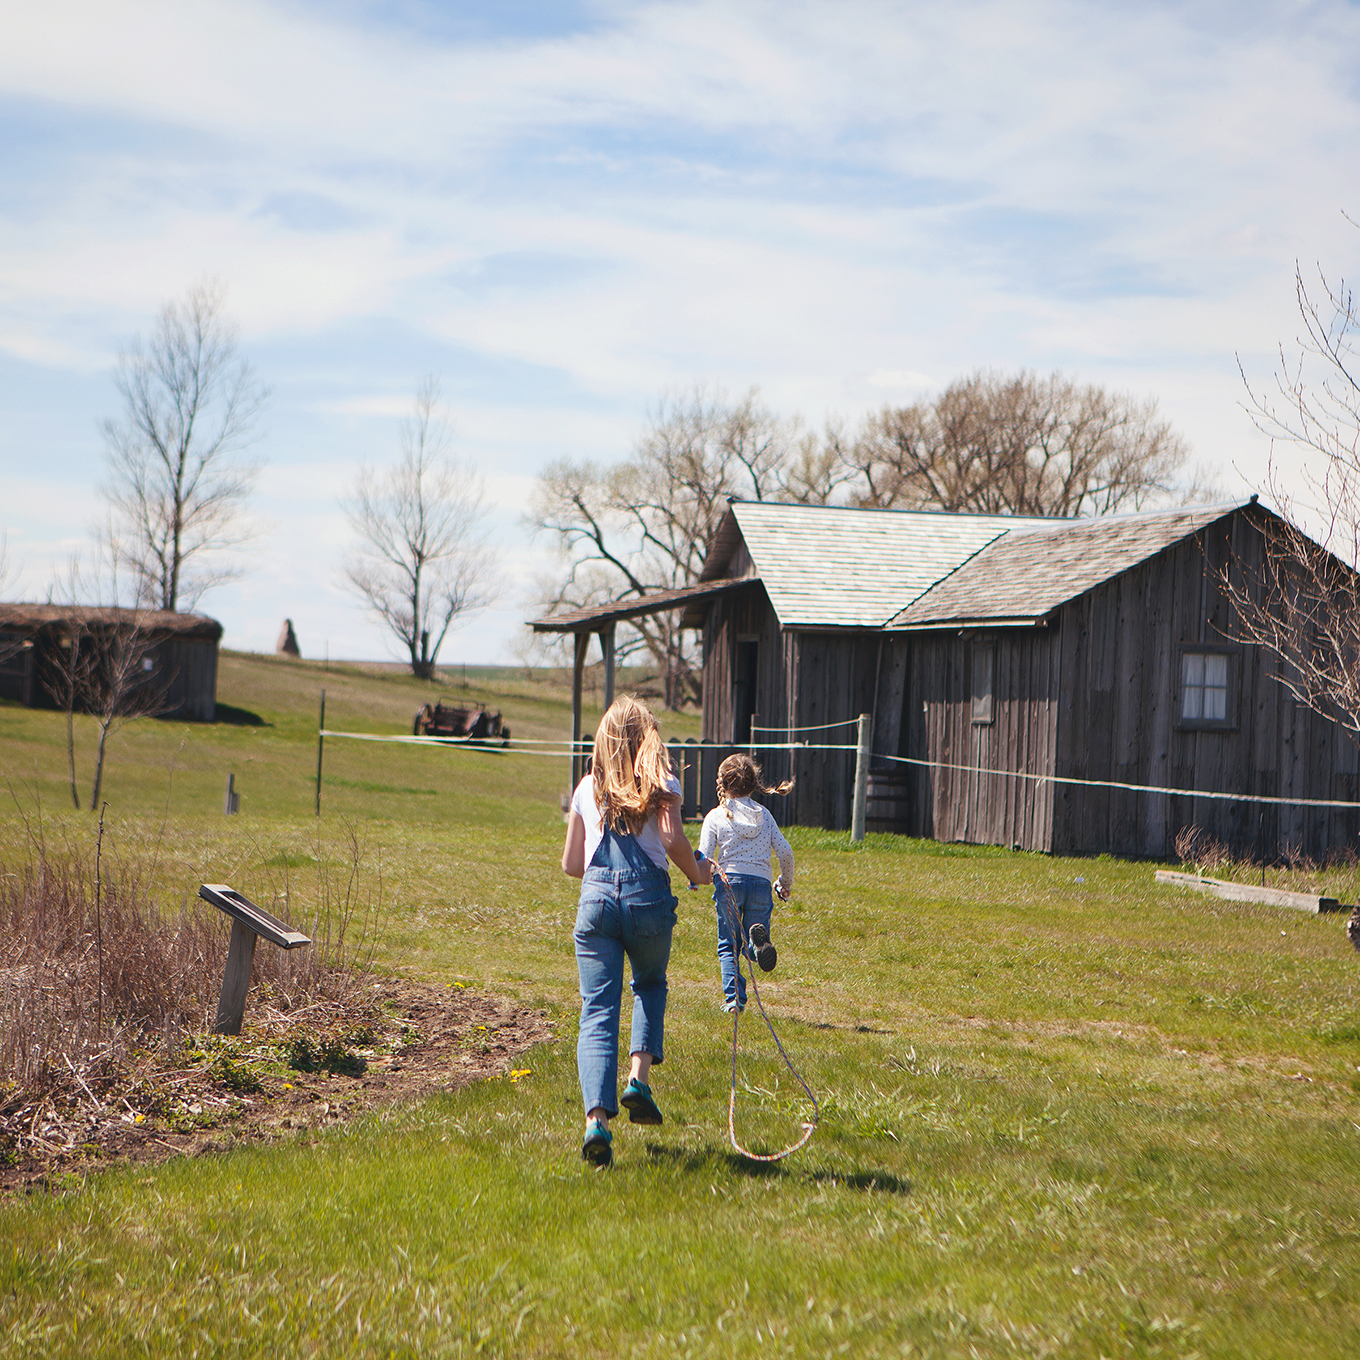 Looking for a truly memorable family experience? Step back in time at the Ingalls Homestead near De Smet, South Dakota! Watch history come to life while exploring the beautiful prairie homestead and learn about the rich pioneer history of the Ingalls family along the way.